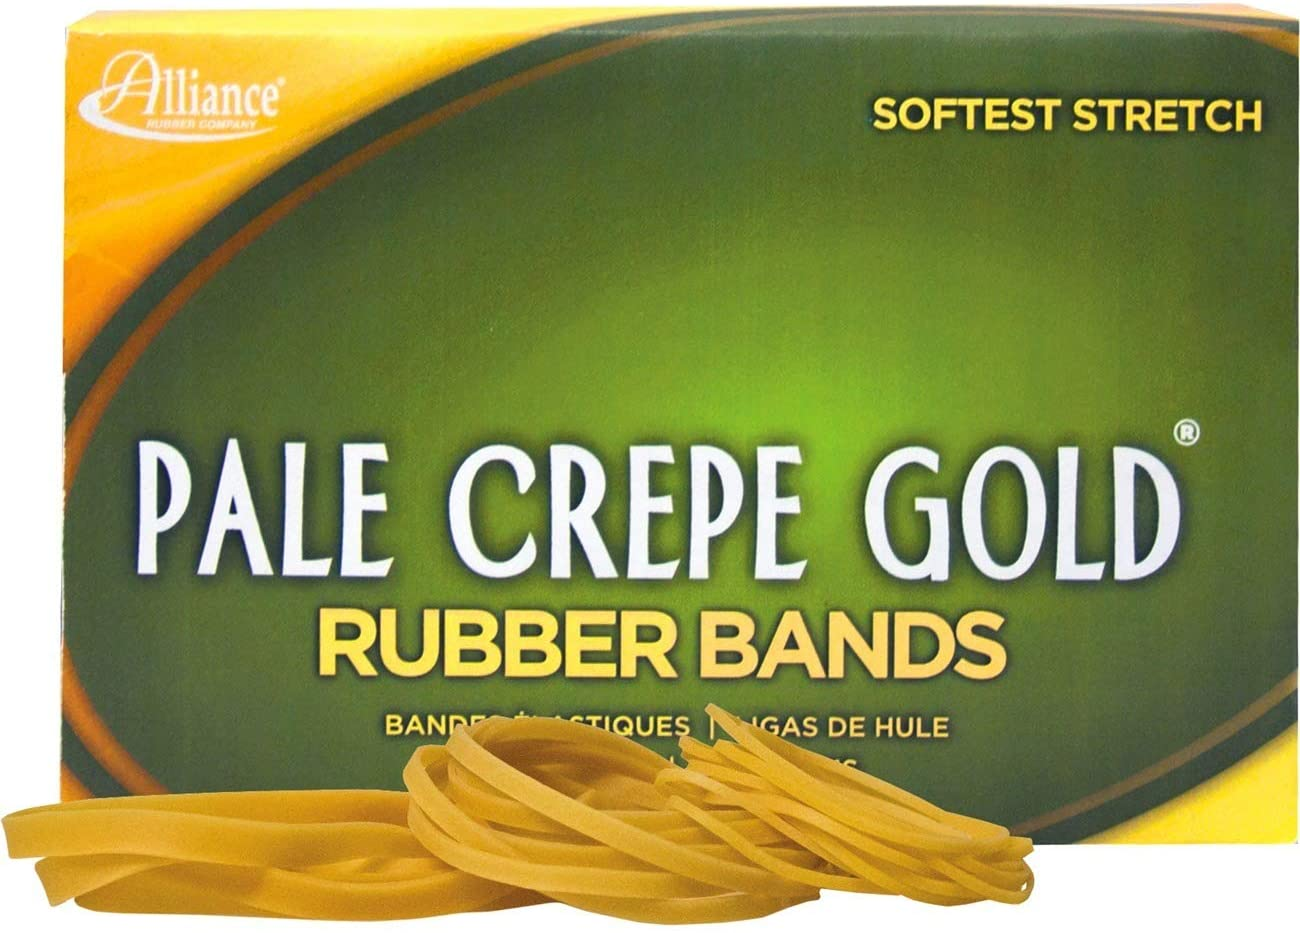 ALL20545 - Alliance Over item handling Rubber 20545 Bands SALENEW very popular Gold Pale Crepe